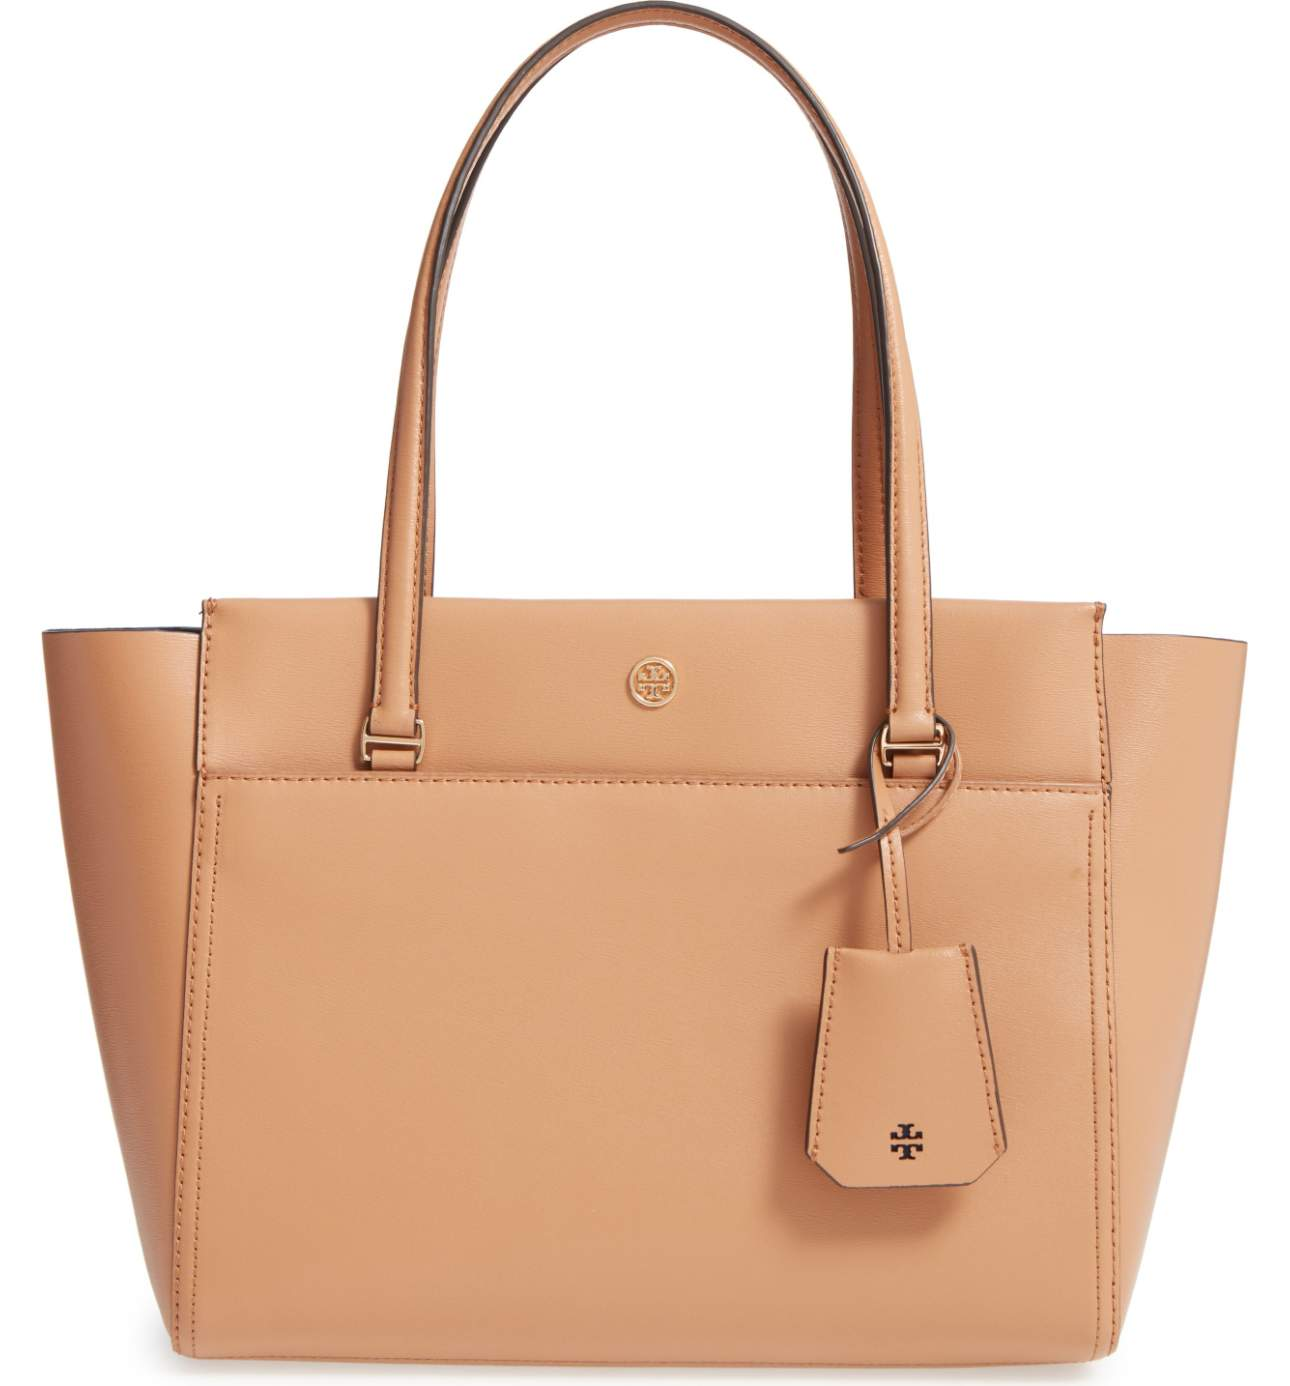 ORY BURCH Small Parker Leather Tote